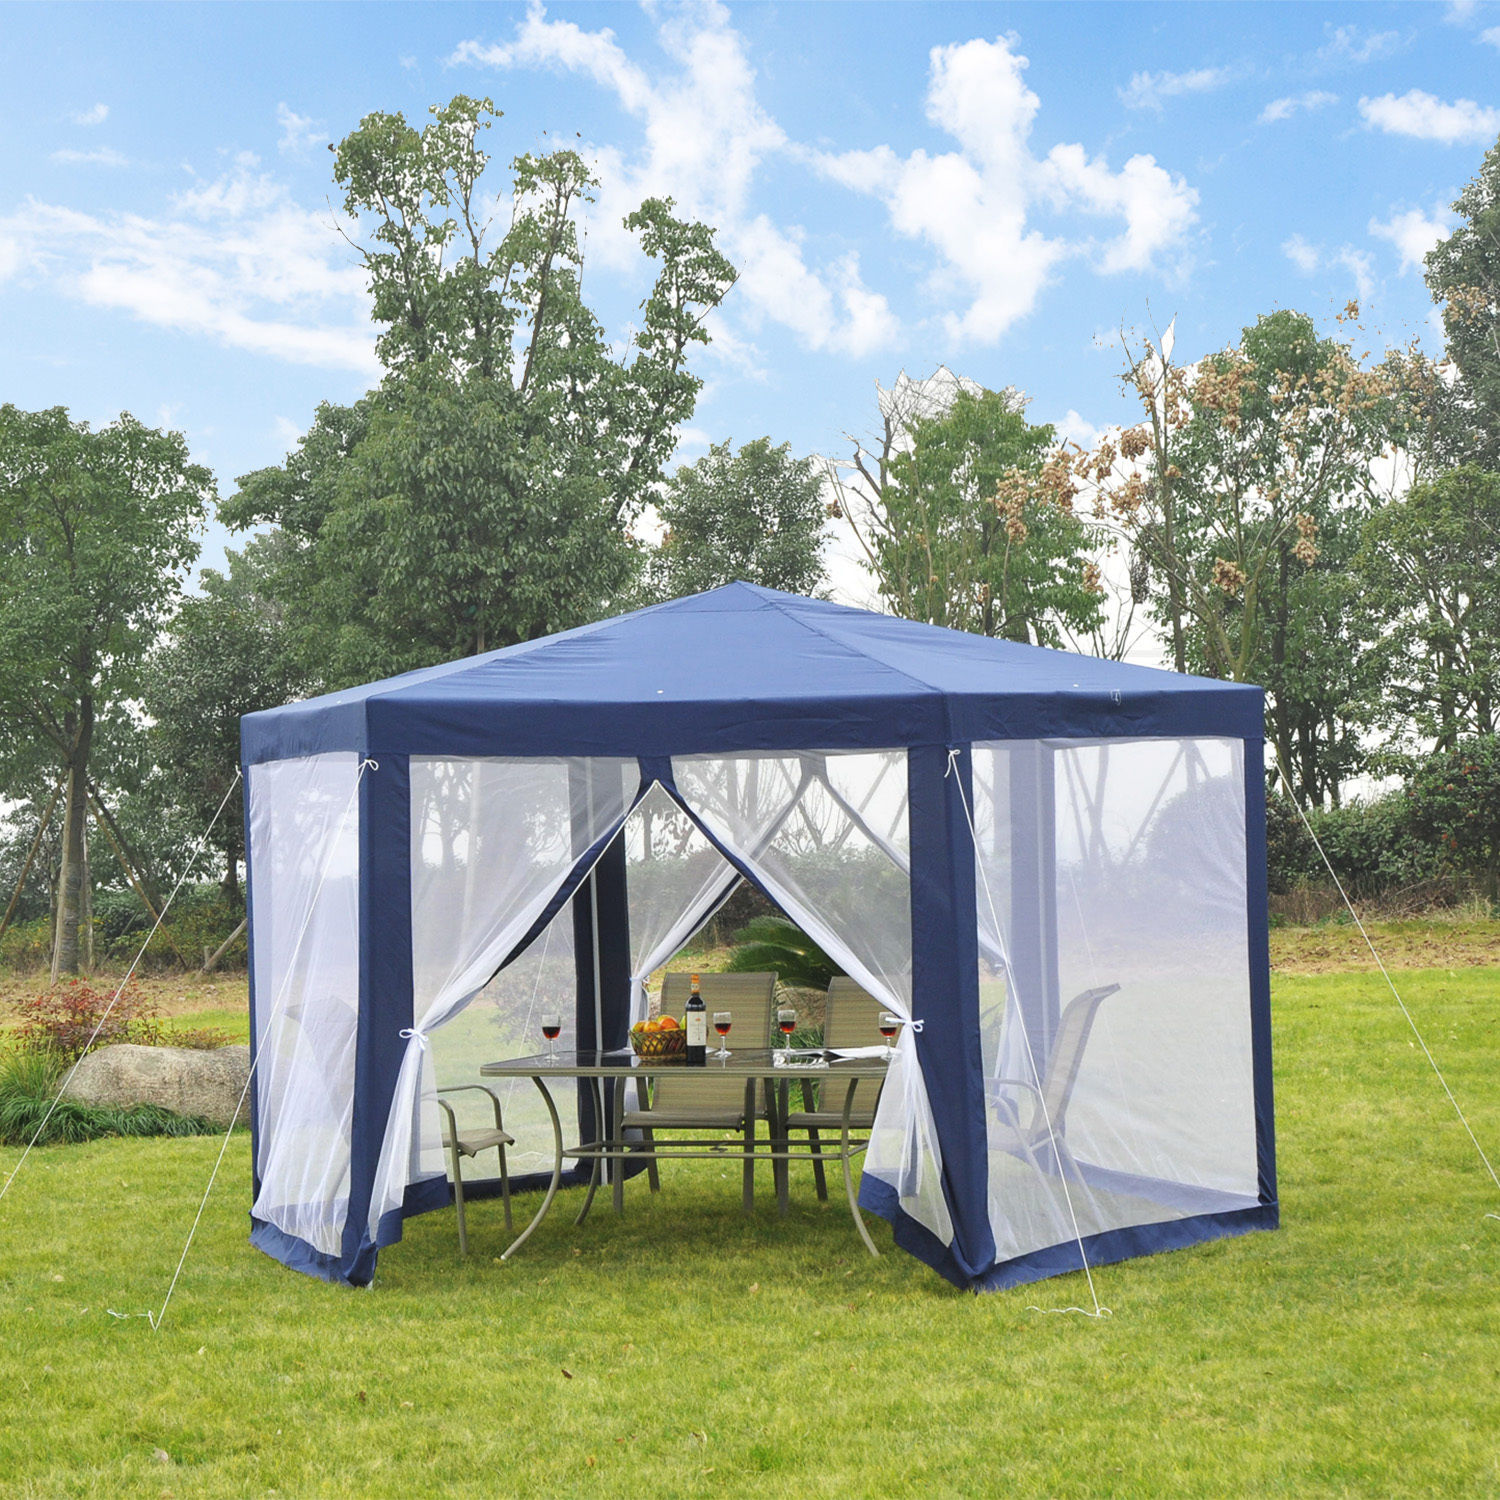 Hexagonal Patio Gazebo Outdoor Canopy Party Tent Activity Event w